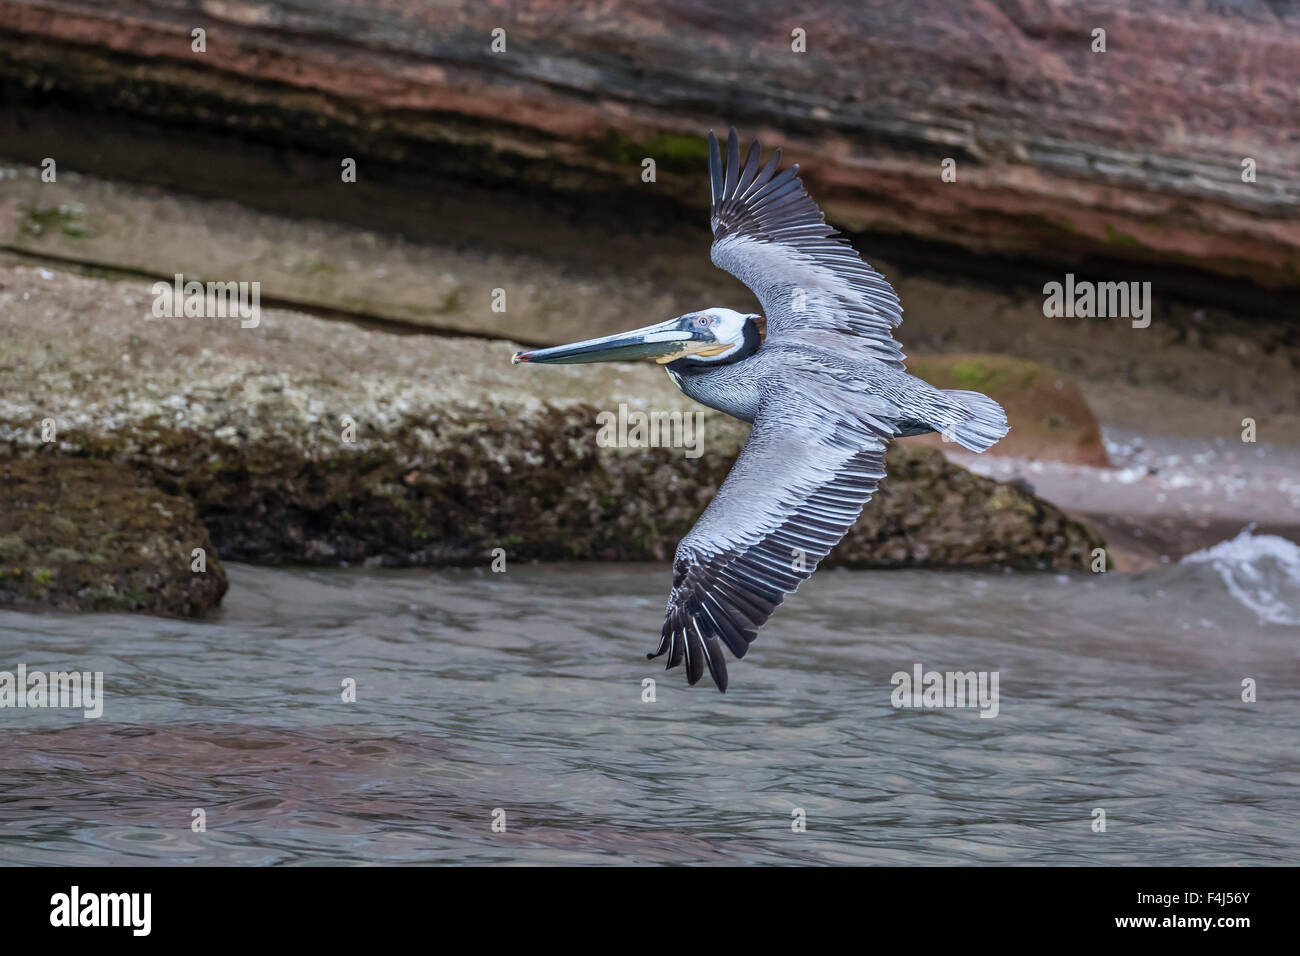 An adult brown pelican (Pelecanus occidentalis) in flight at Punta Colorado, Isla San Jose, Baja California Sur, Stock Photo